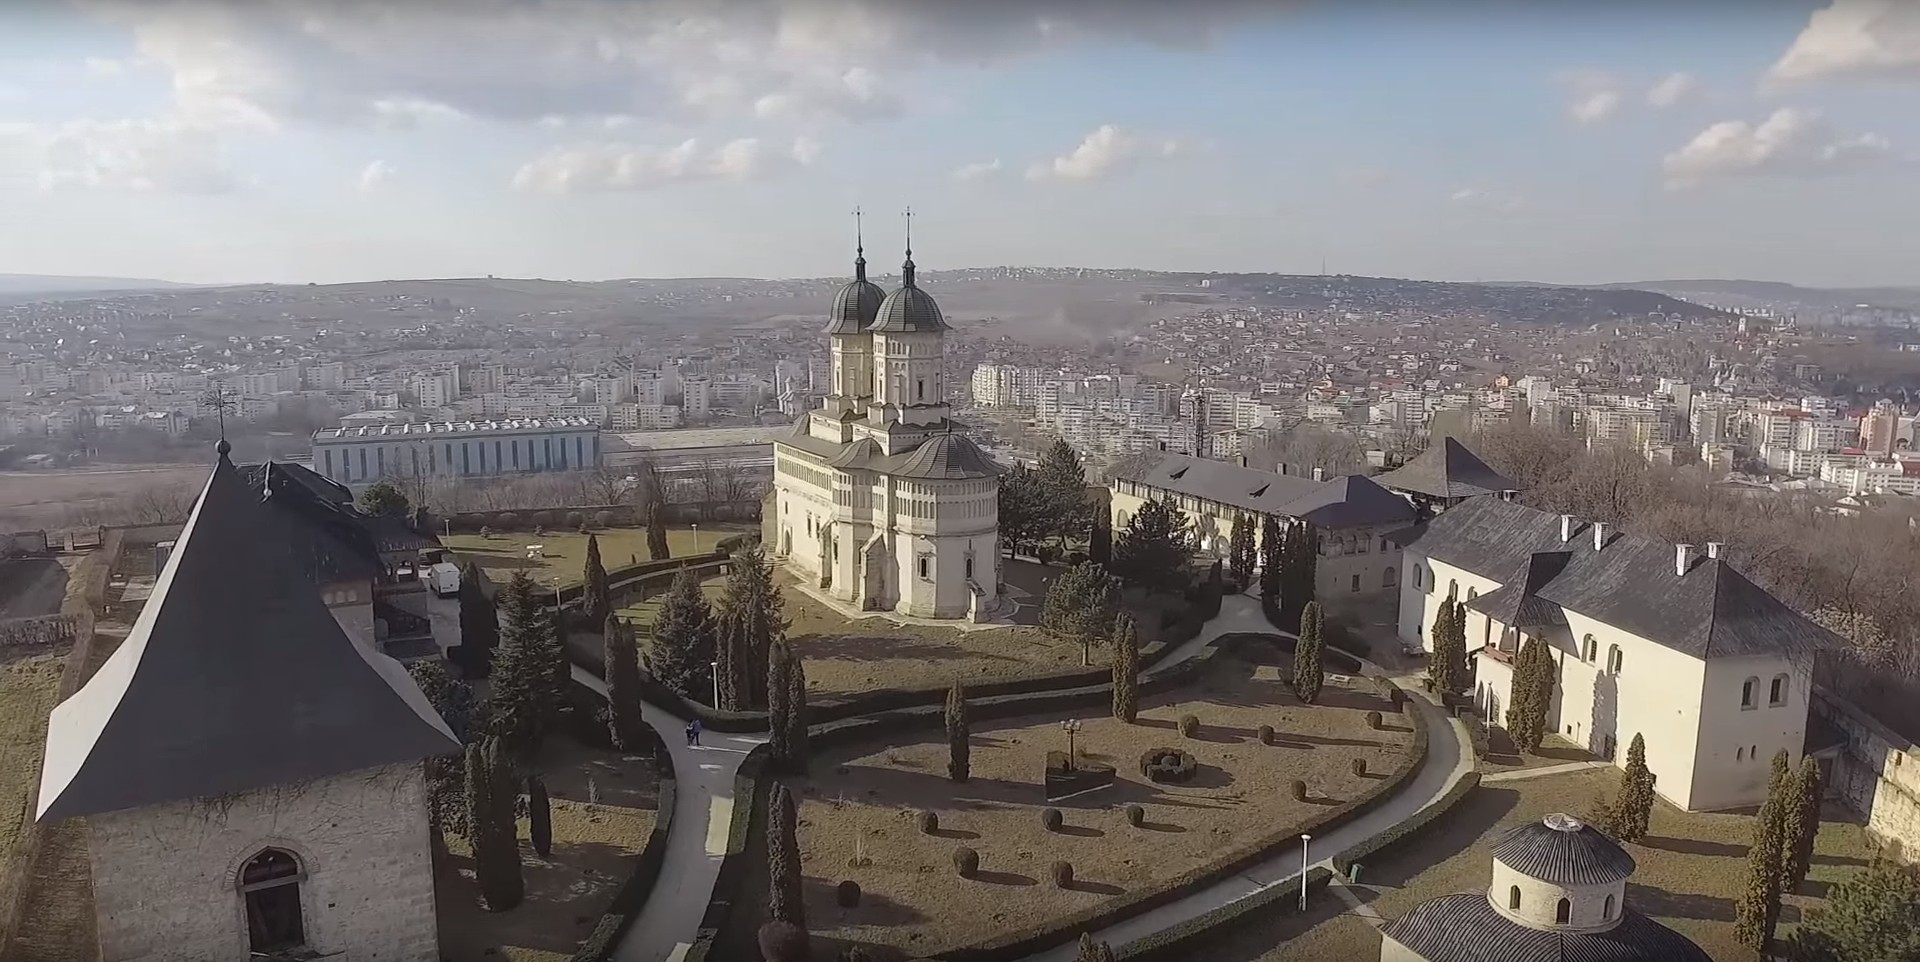 Iasi in my vision